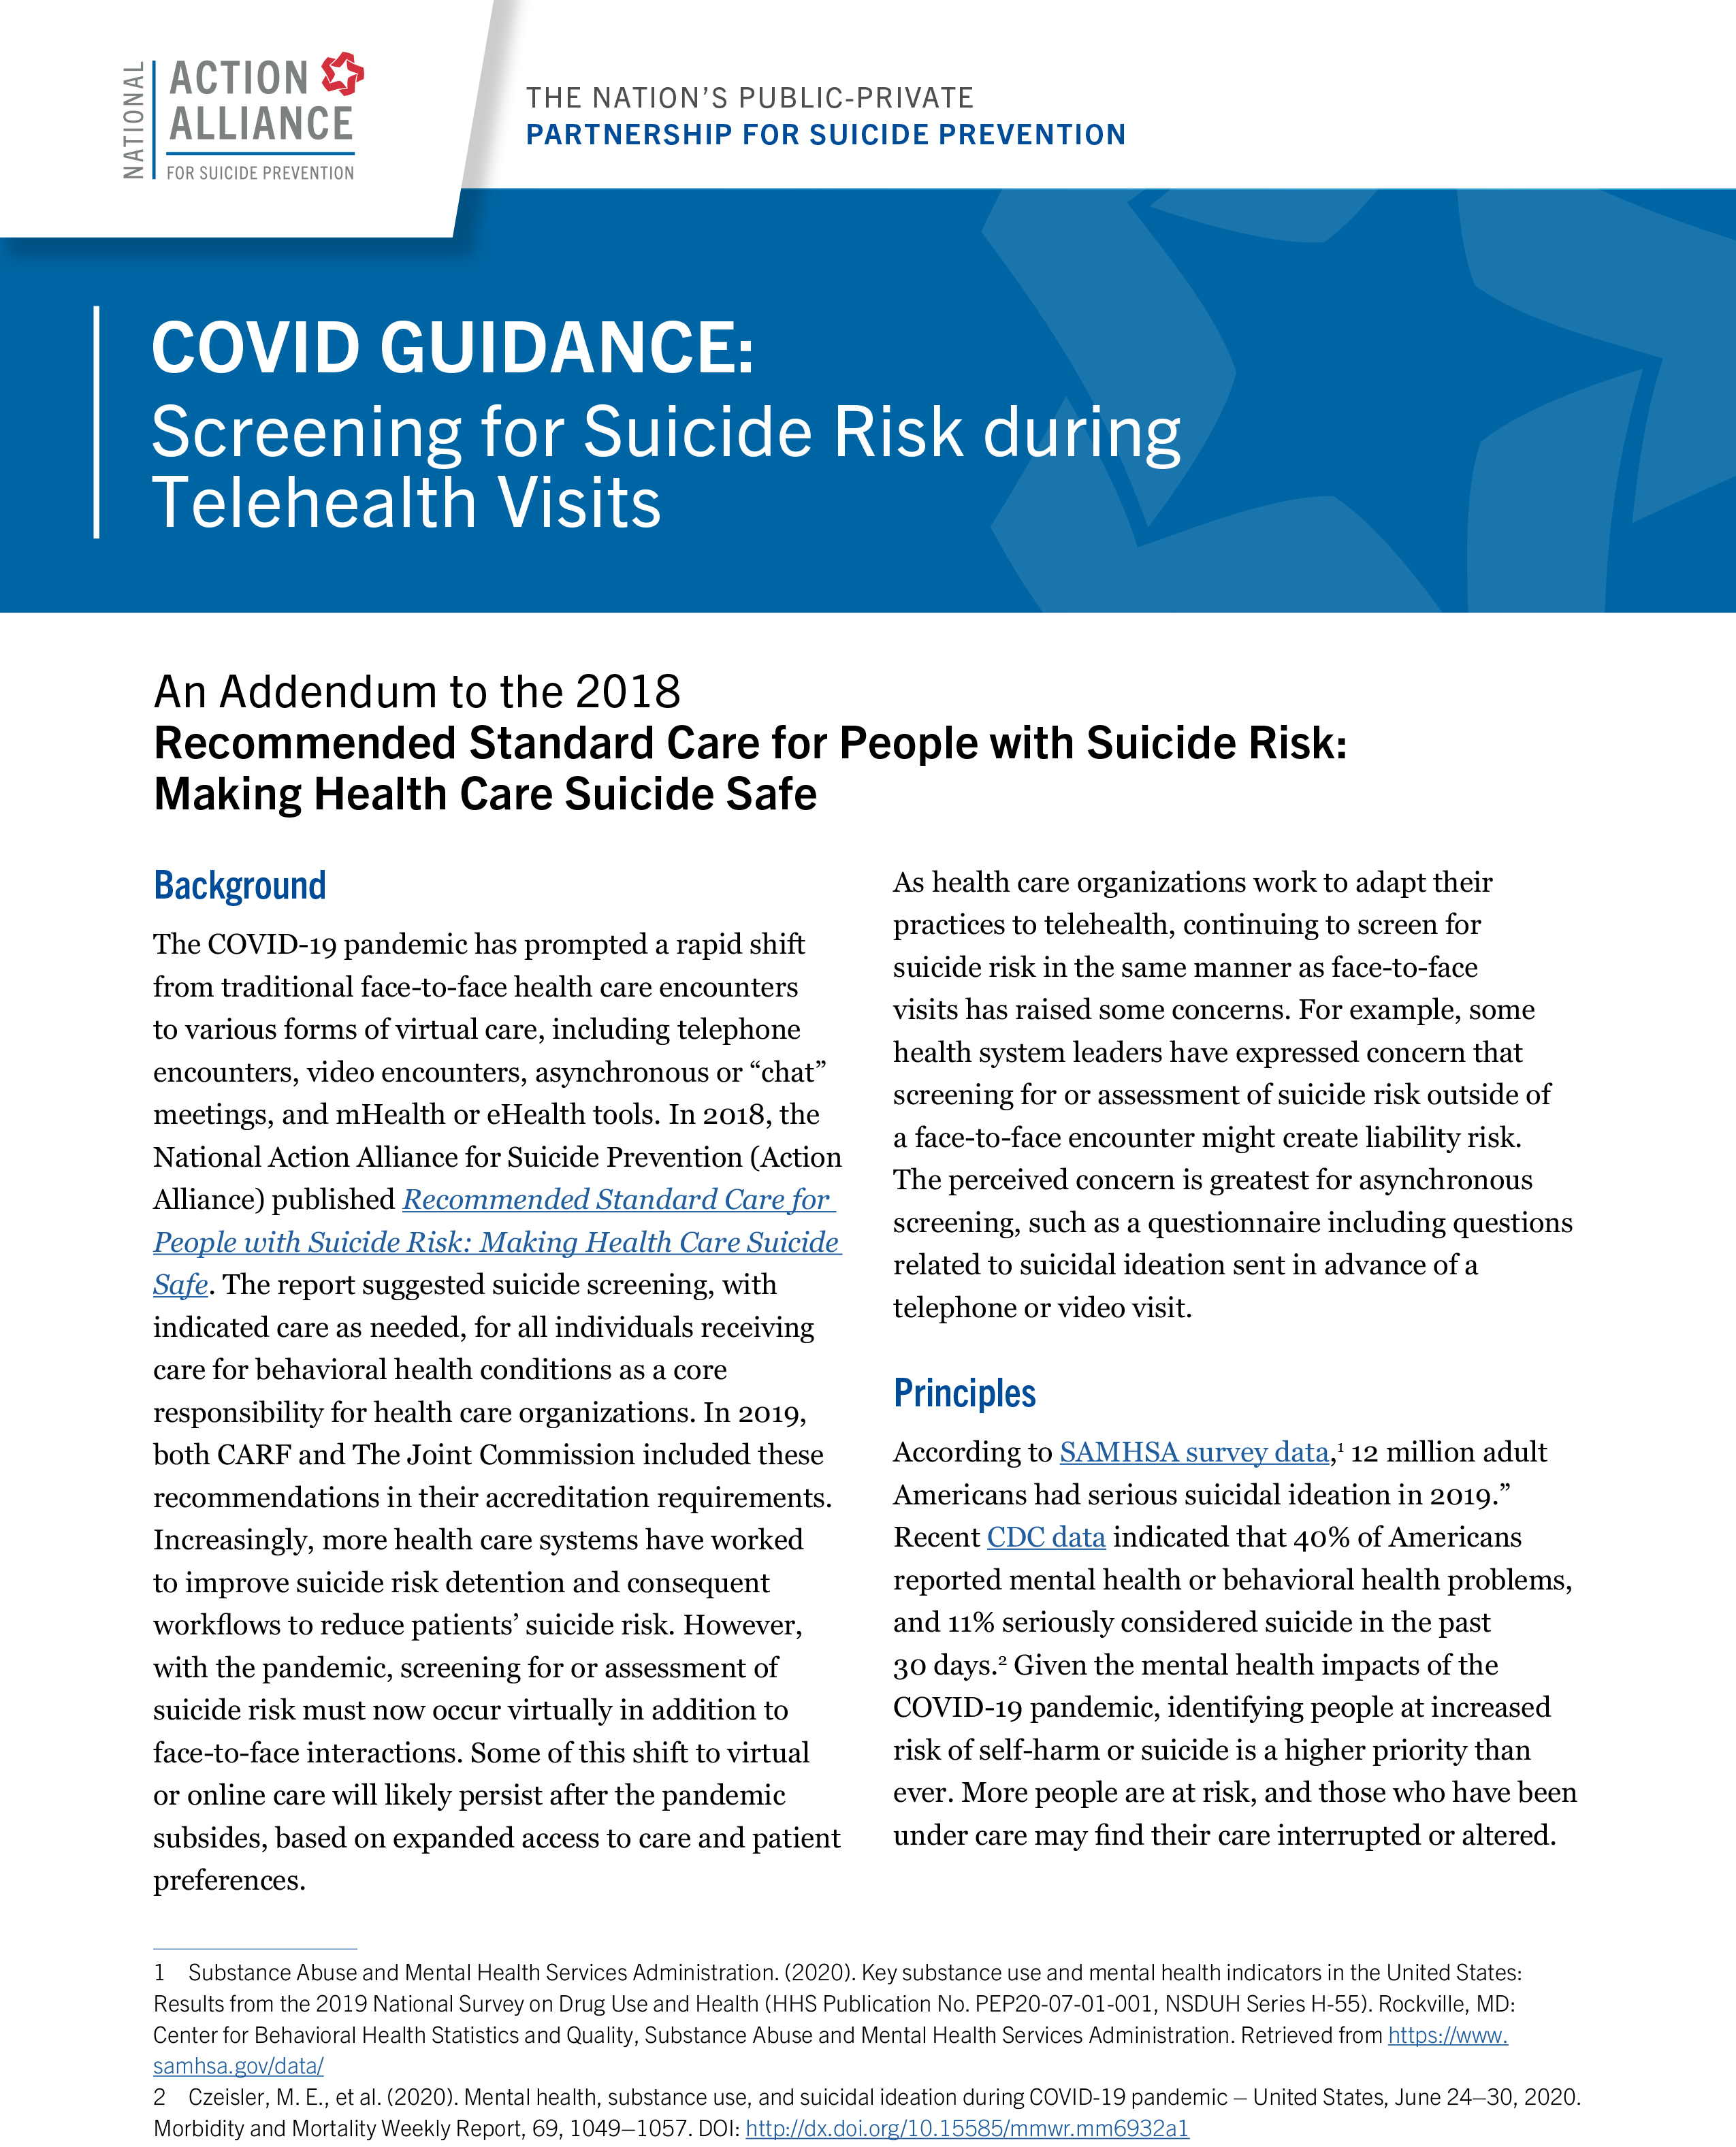 COVID Guidance: Screening for Suicide Risk during Telehealth Visits